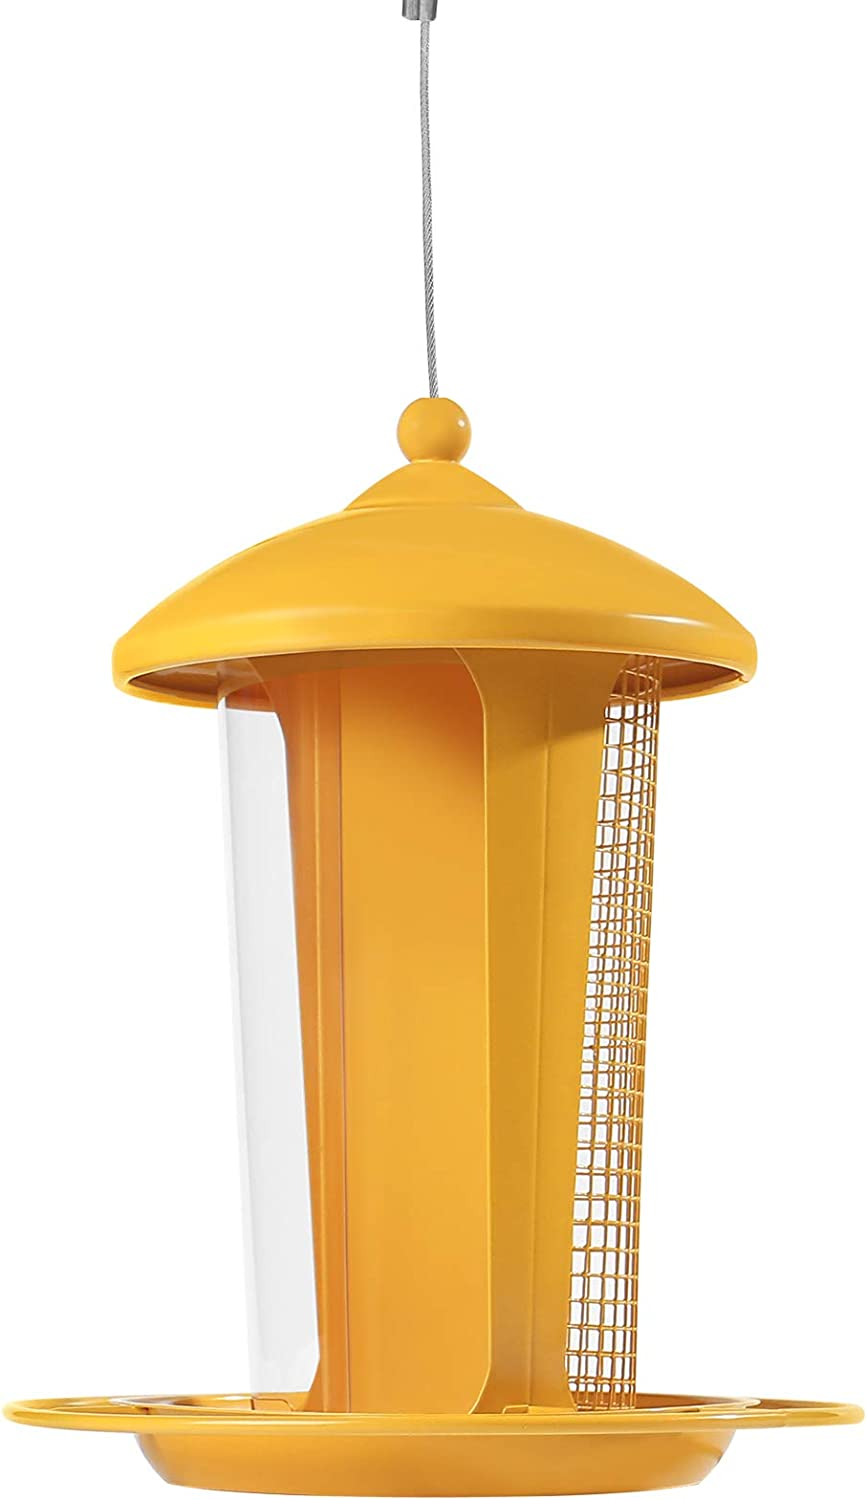 NUOLIDE ,Outdoor Bird Feeder Suitable for Garden Decoration,A Bird Feeder That Can Put Two Kinds of Bird Food Makes It Easier to Attract Birds.